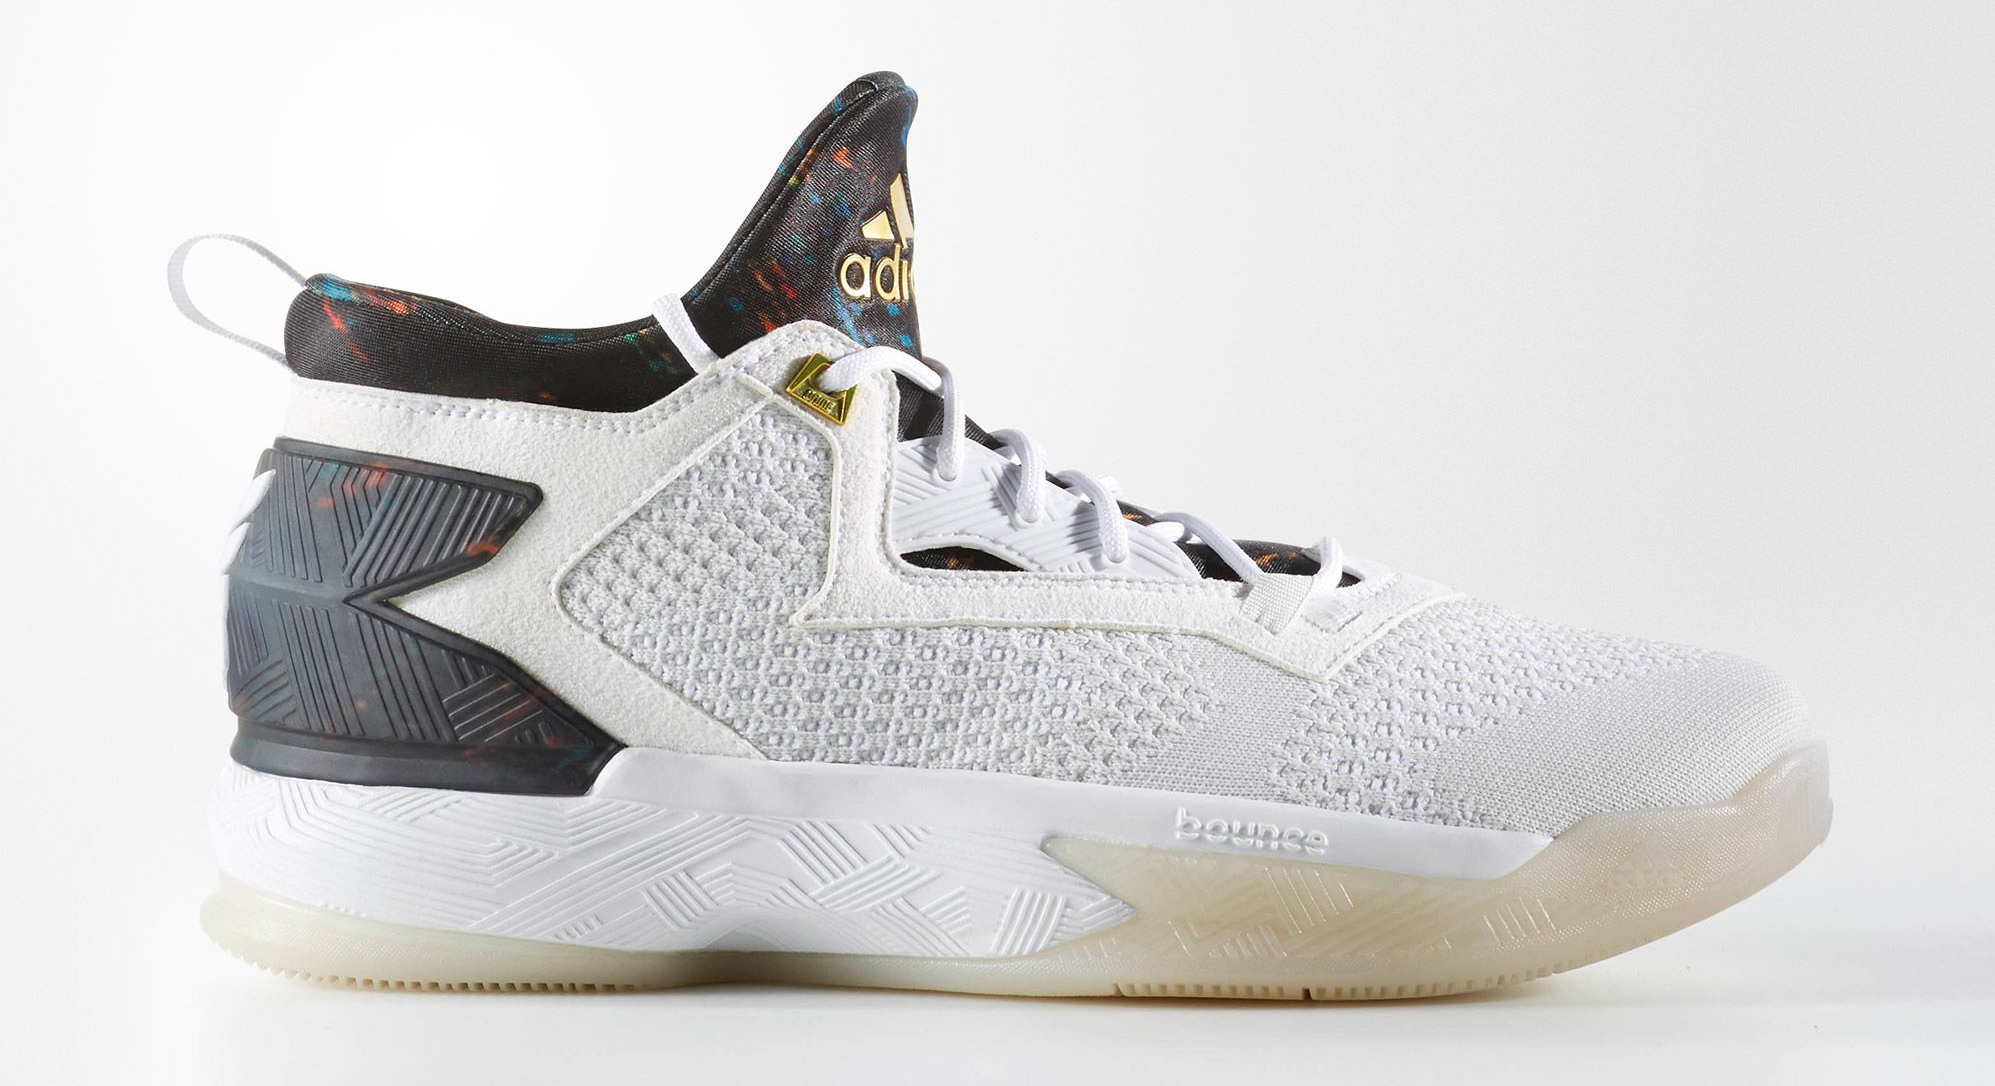 d094dd7afc8d7 The adidas D Lillard 2 Isn't Done Yet - WearTesters